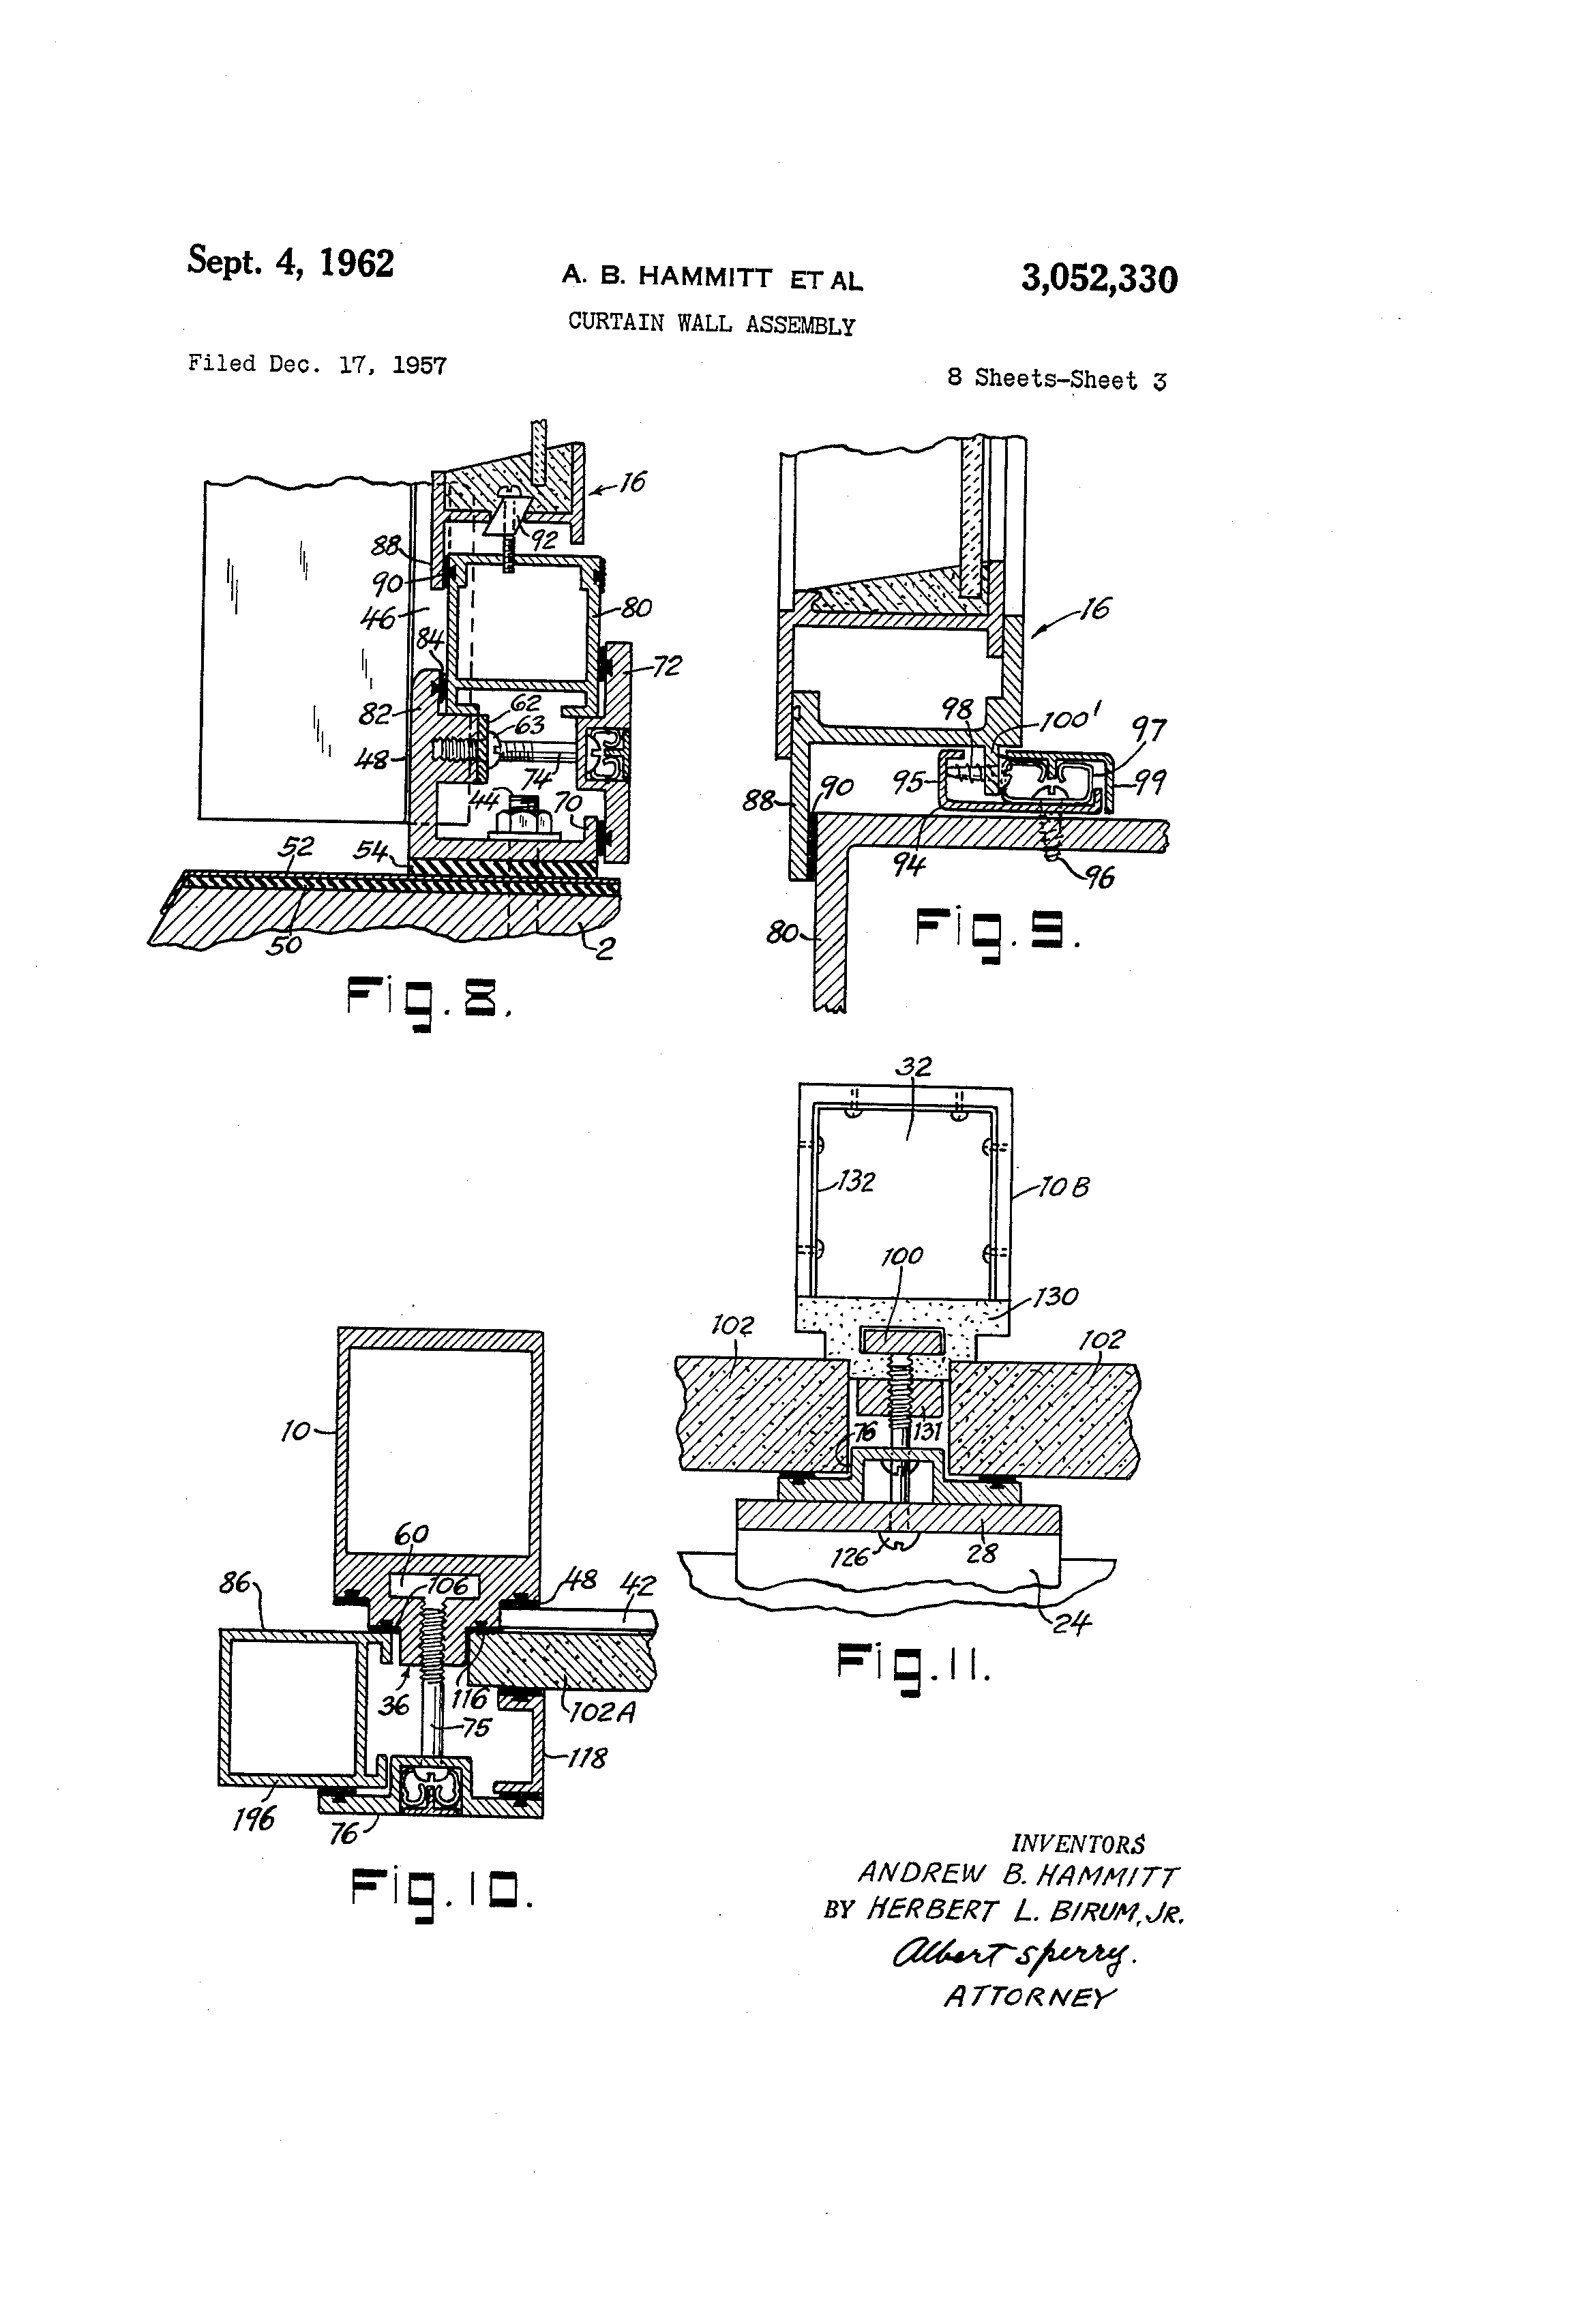 Curtain Wall Assembly : Patent us curtain wall assembly google patents